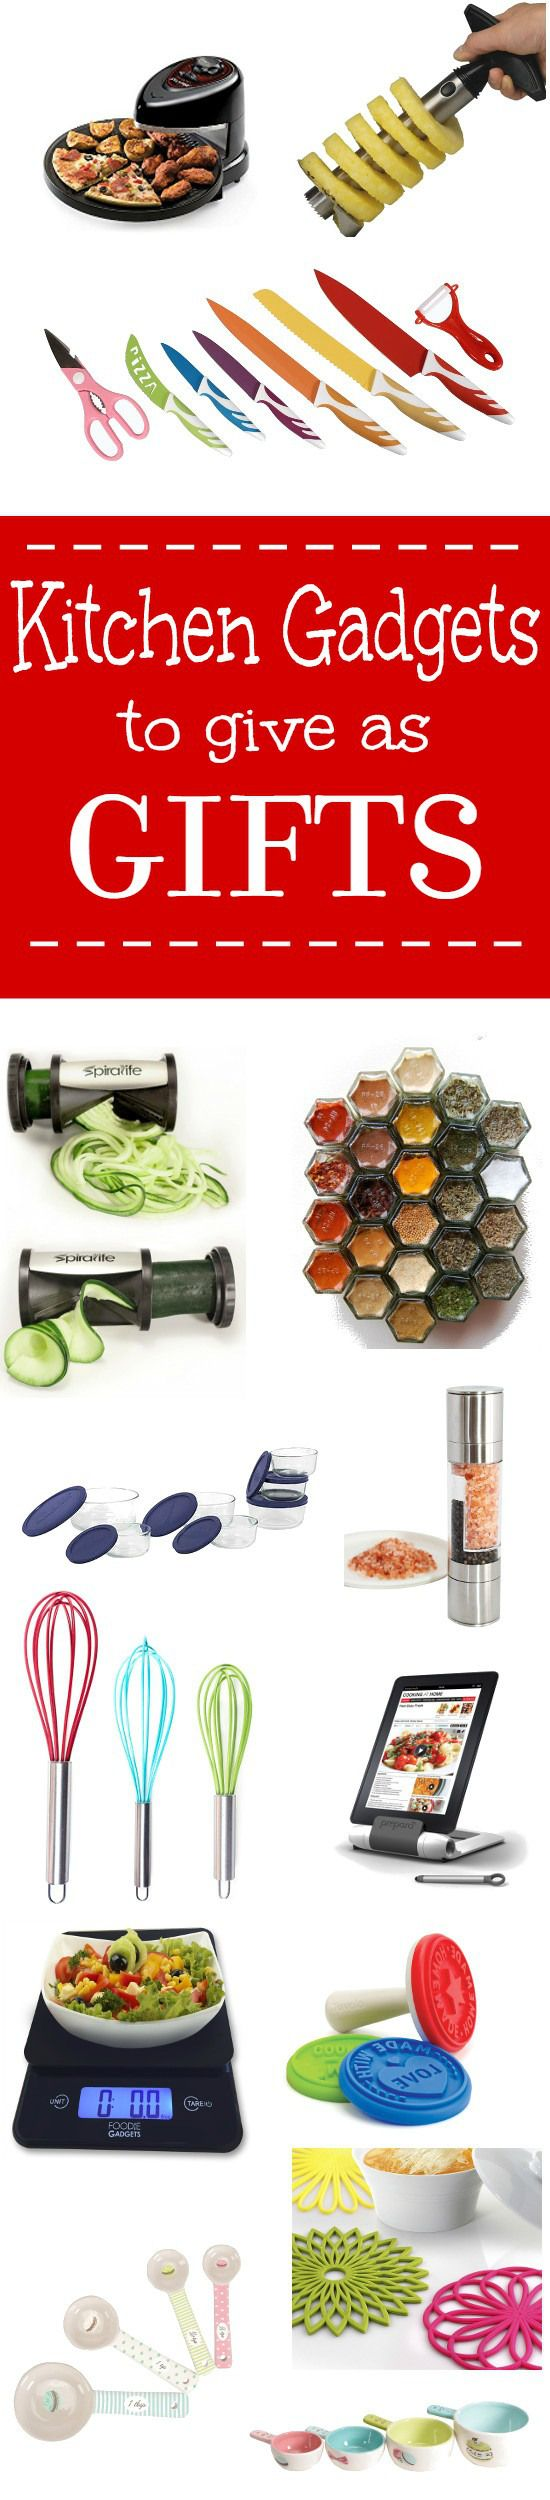 769 best images about gift ideas on pinterest christmas ideas kitchen gadget gift ideas